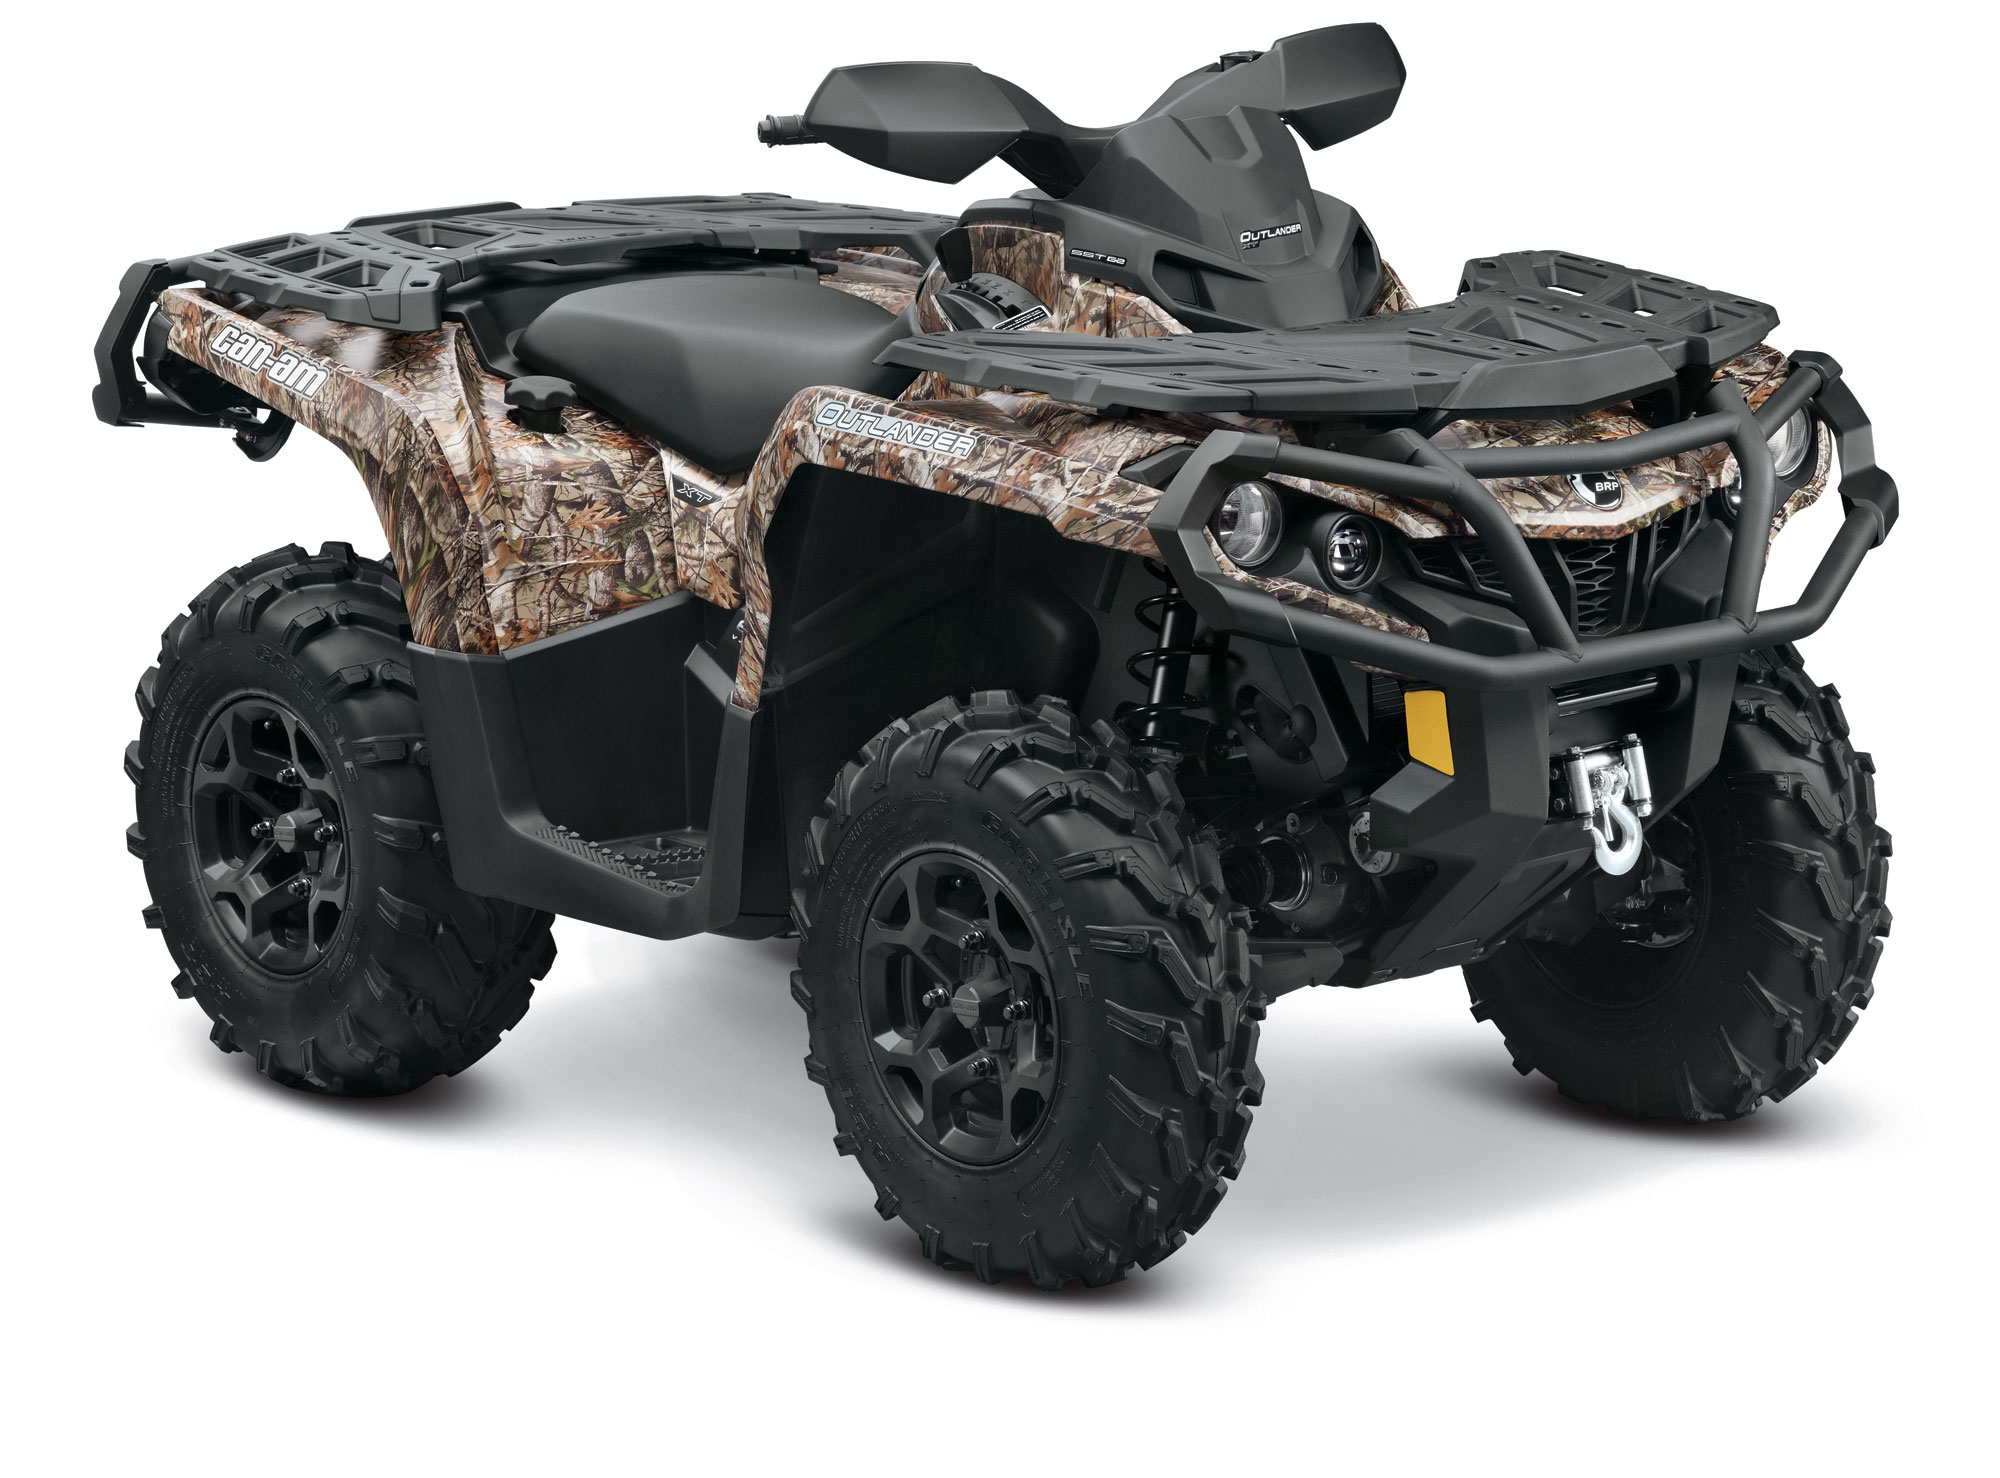 2013 Can-Am Outlander XT 650 Review